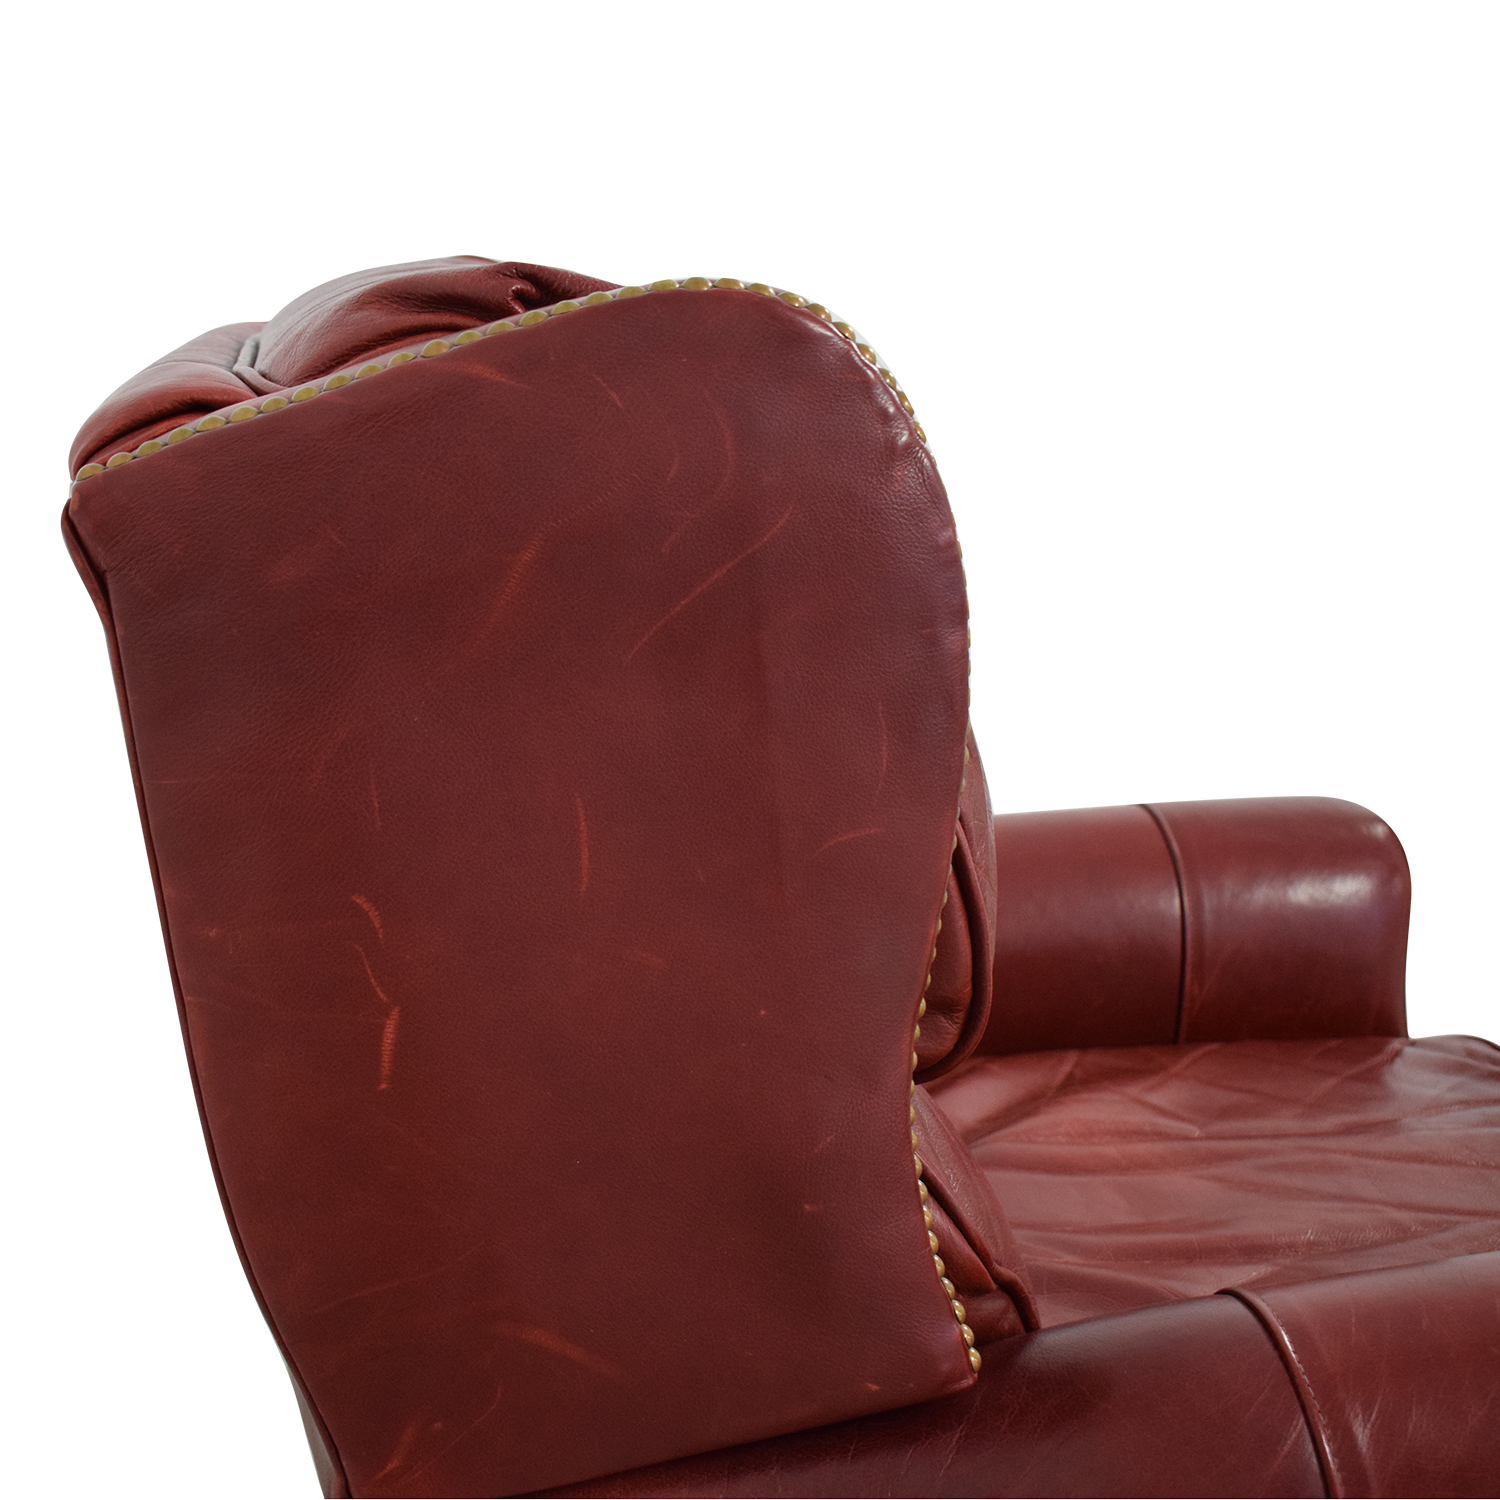 buy McKinley Leather Recliner McKinley Leather Furniture Chairs